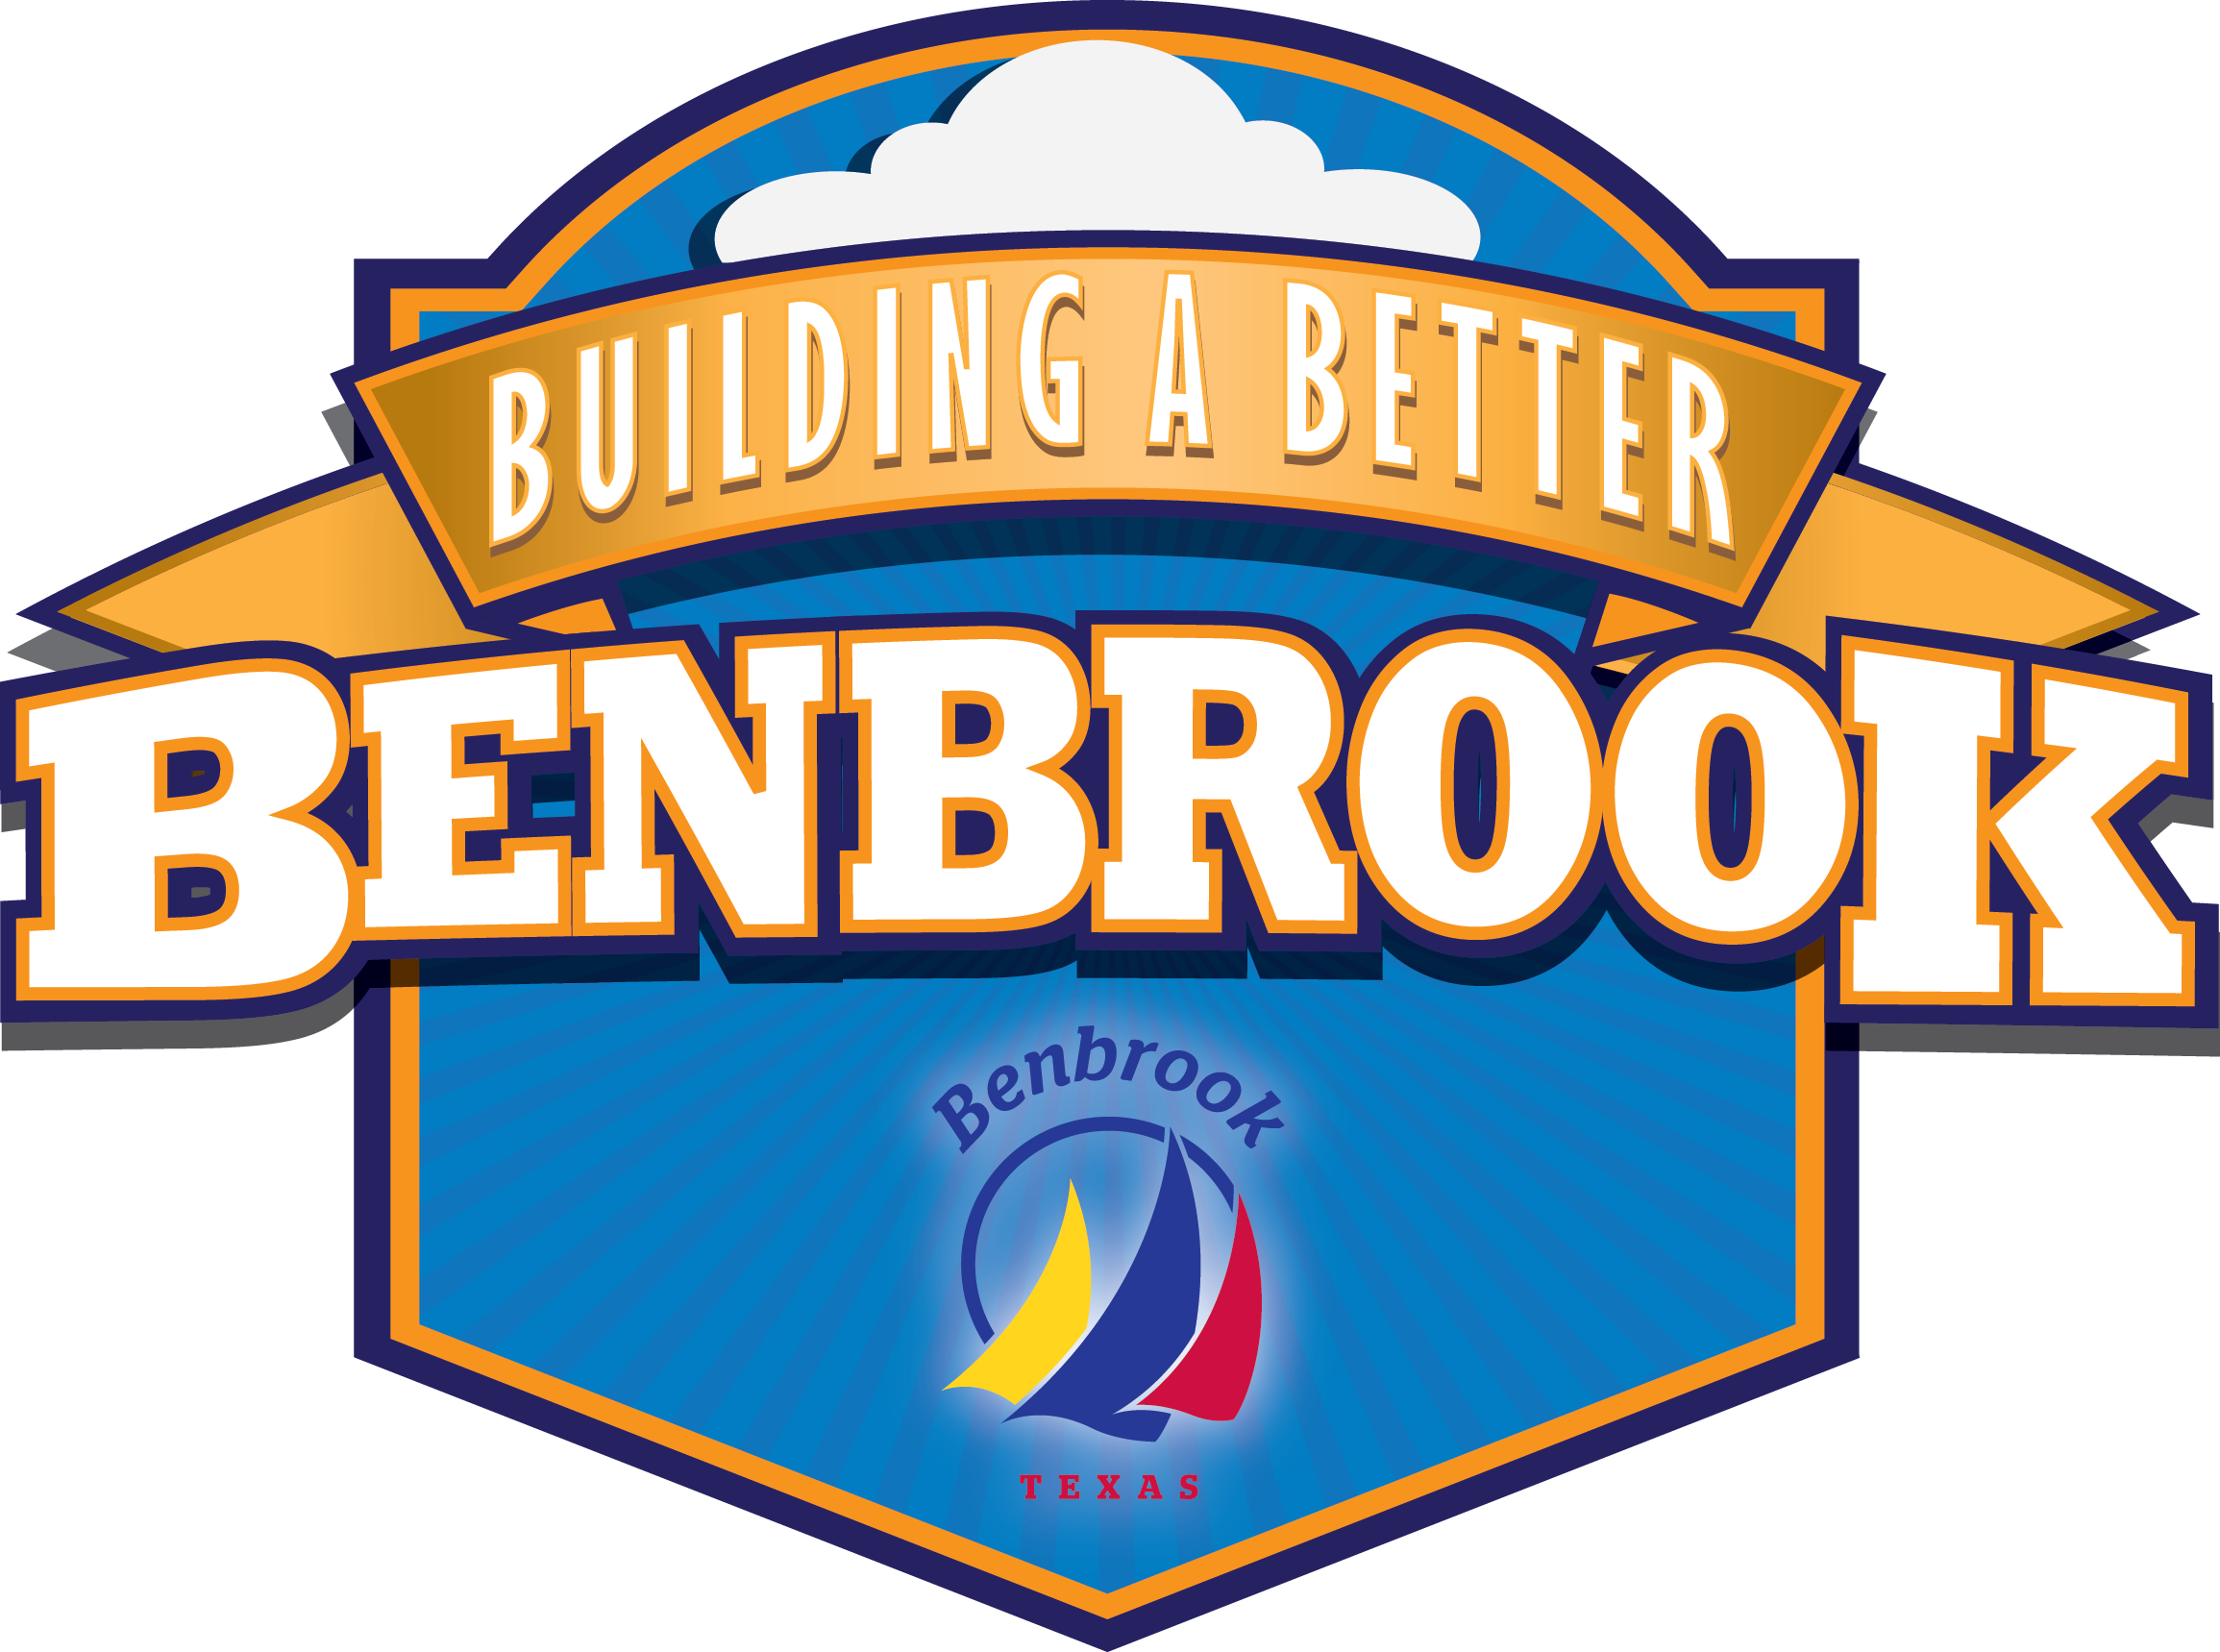 Building a Better Benbrook Logo